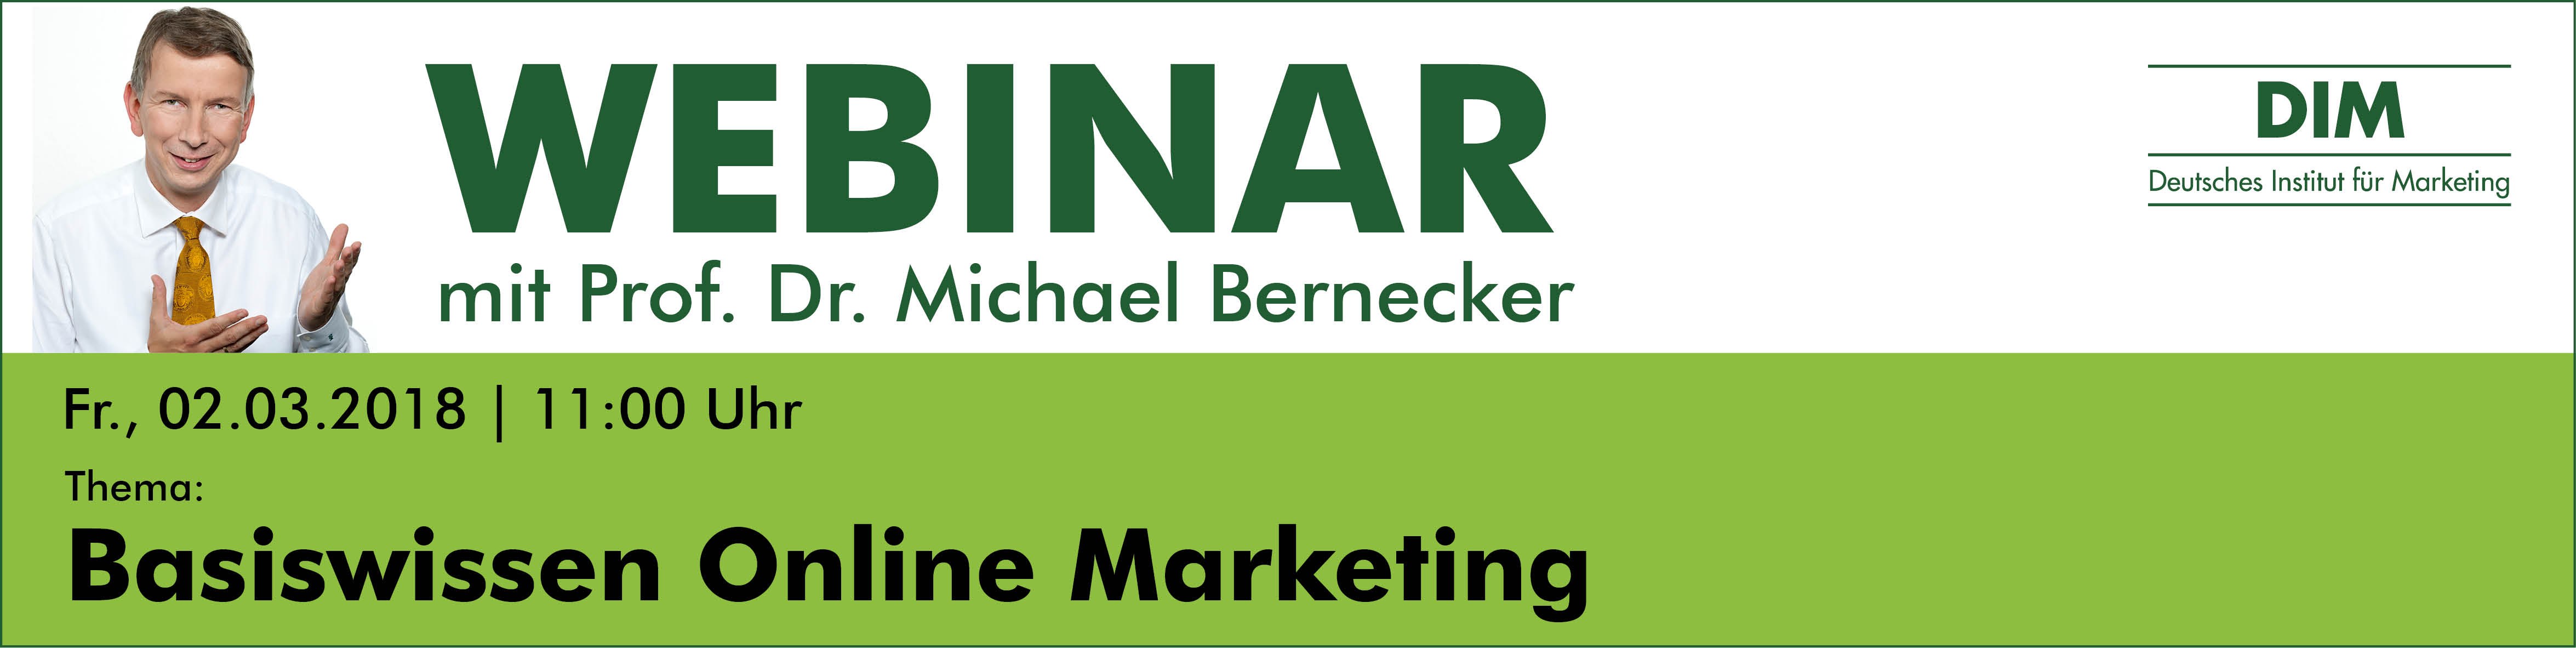 Live-Webinar Basiswissen Online Marketing